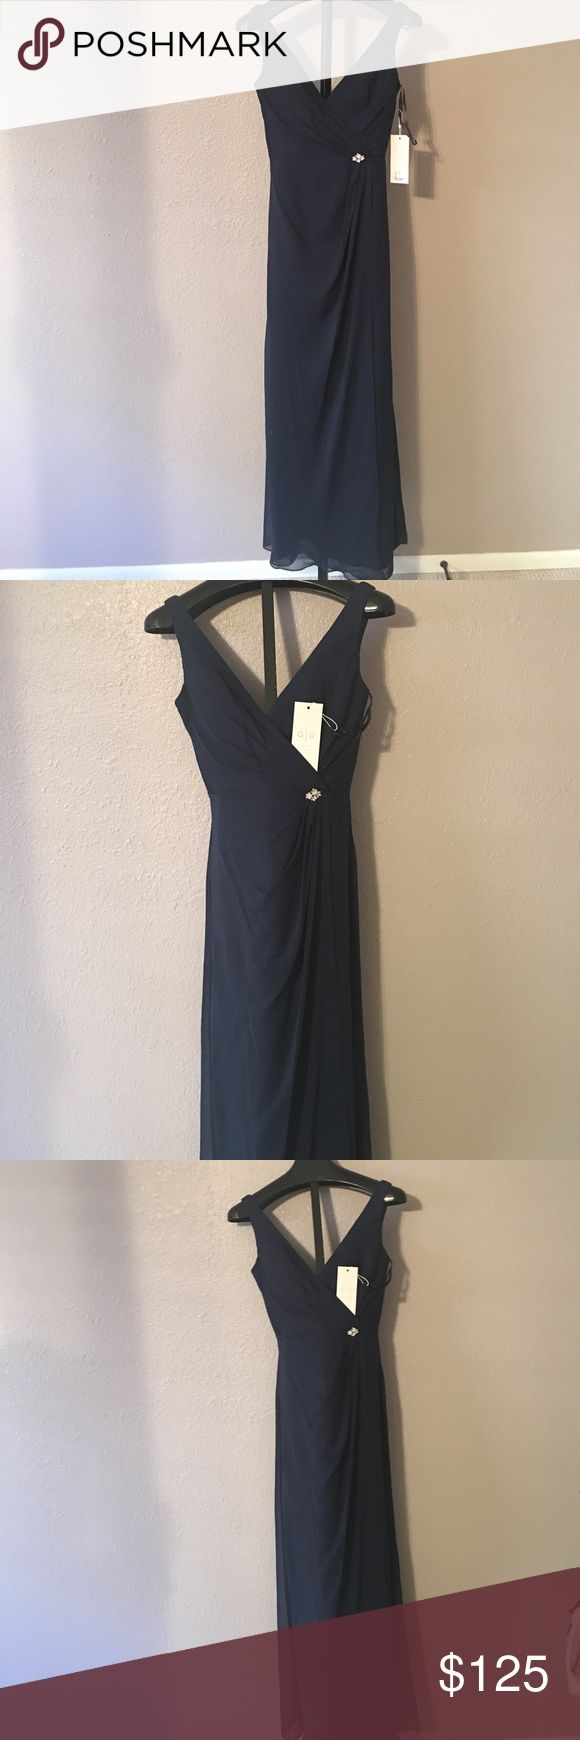 Brand new with tags. Stunning evening gown., Stunning size 6 black evening gown. Beautiful crystal brooch and pleated front.Dress designed by David Tutera. Popular with celebrities. Gather and Gown Dresses Prom